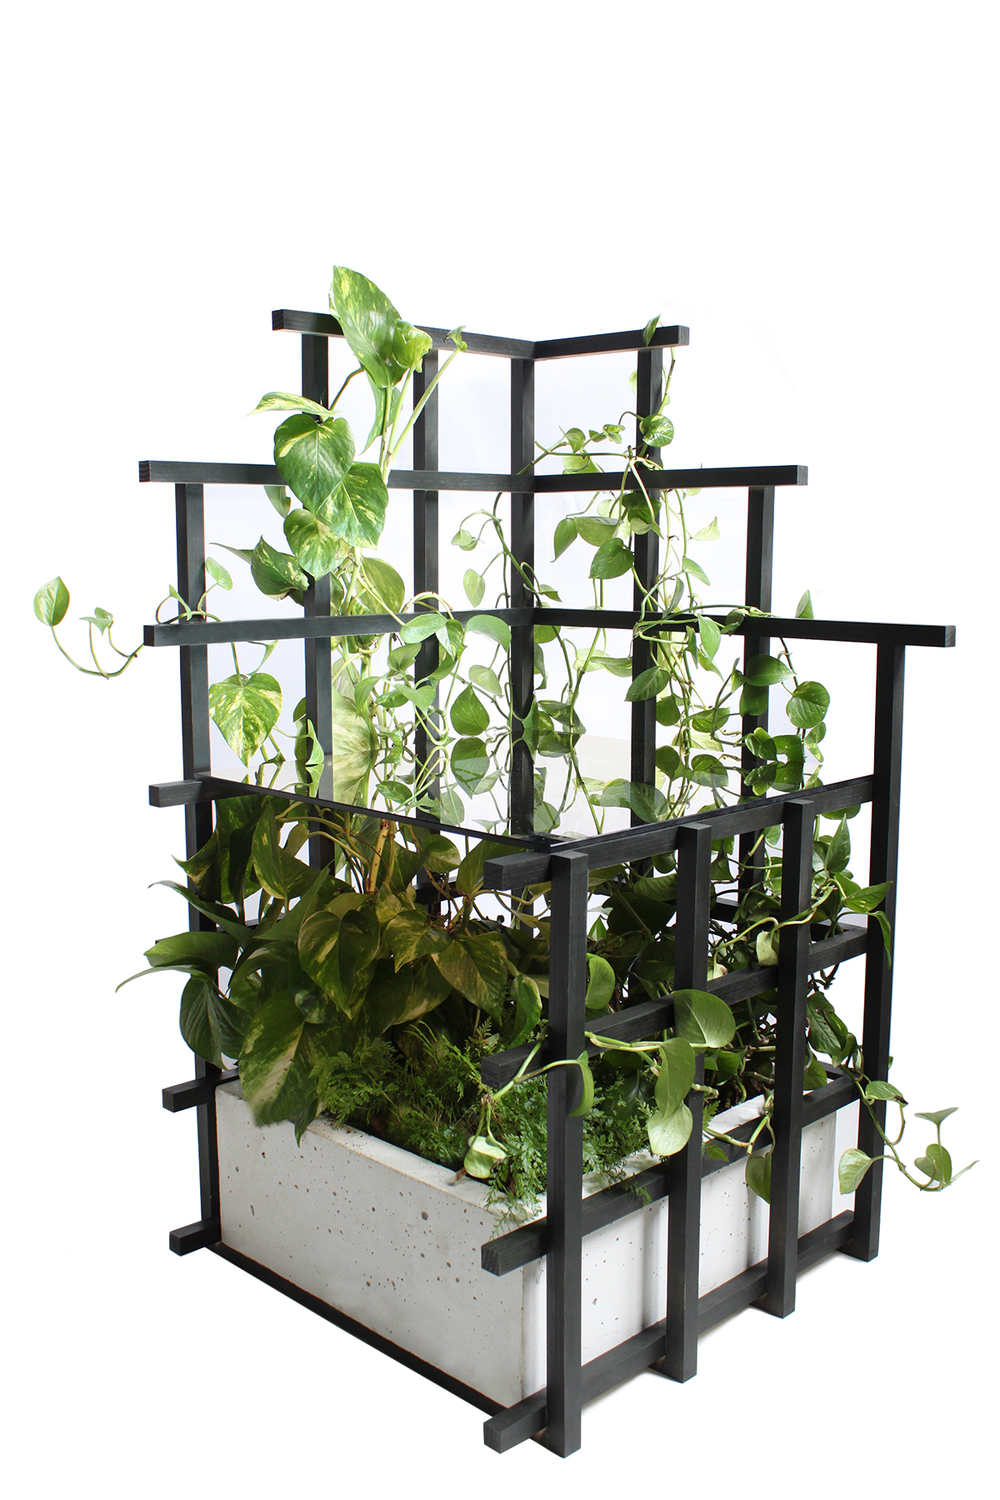 "TRELLIS SIDE TABLE CLEAR PINE, ONE WAY MIRROR, CONCRETE, PLANTS 18"" x 18"" x 36"""